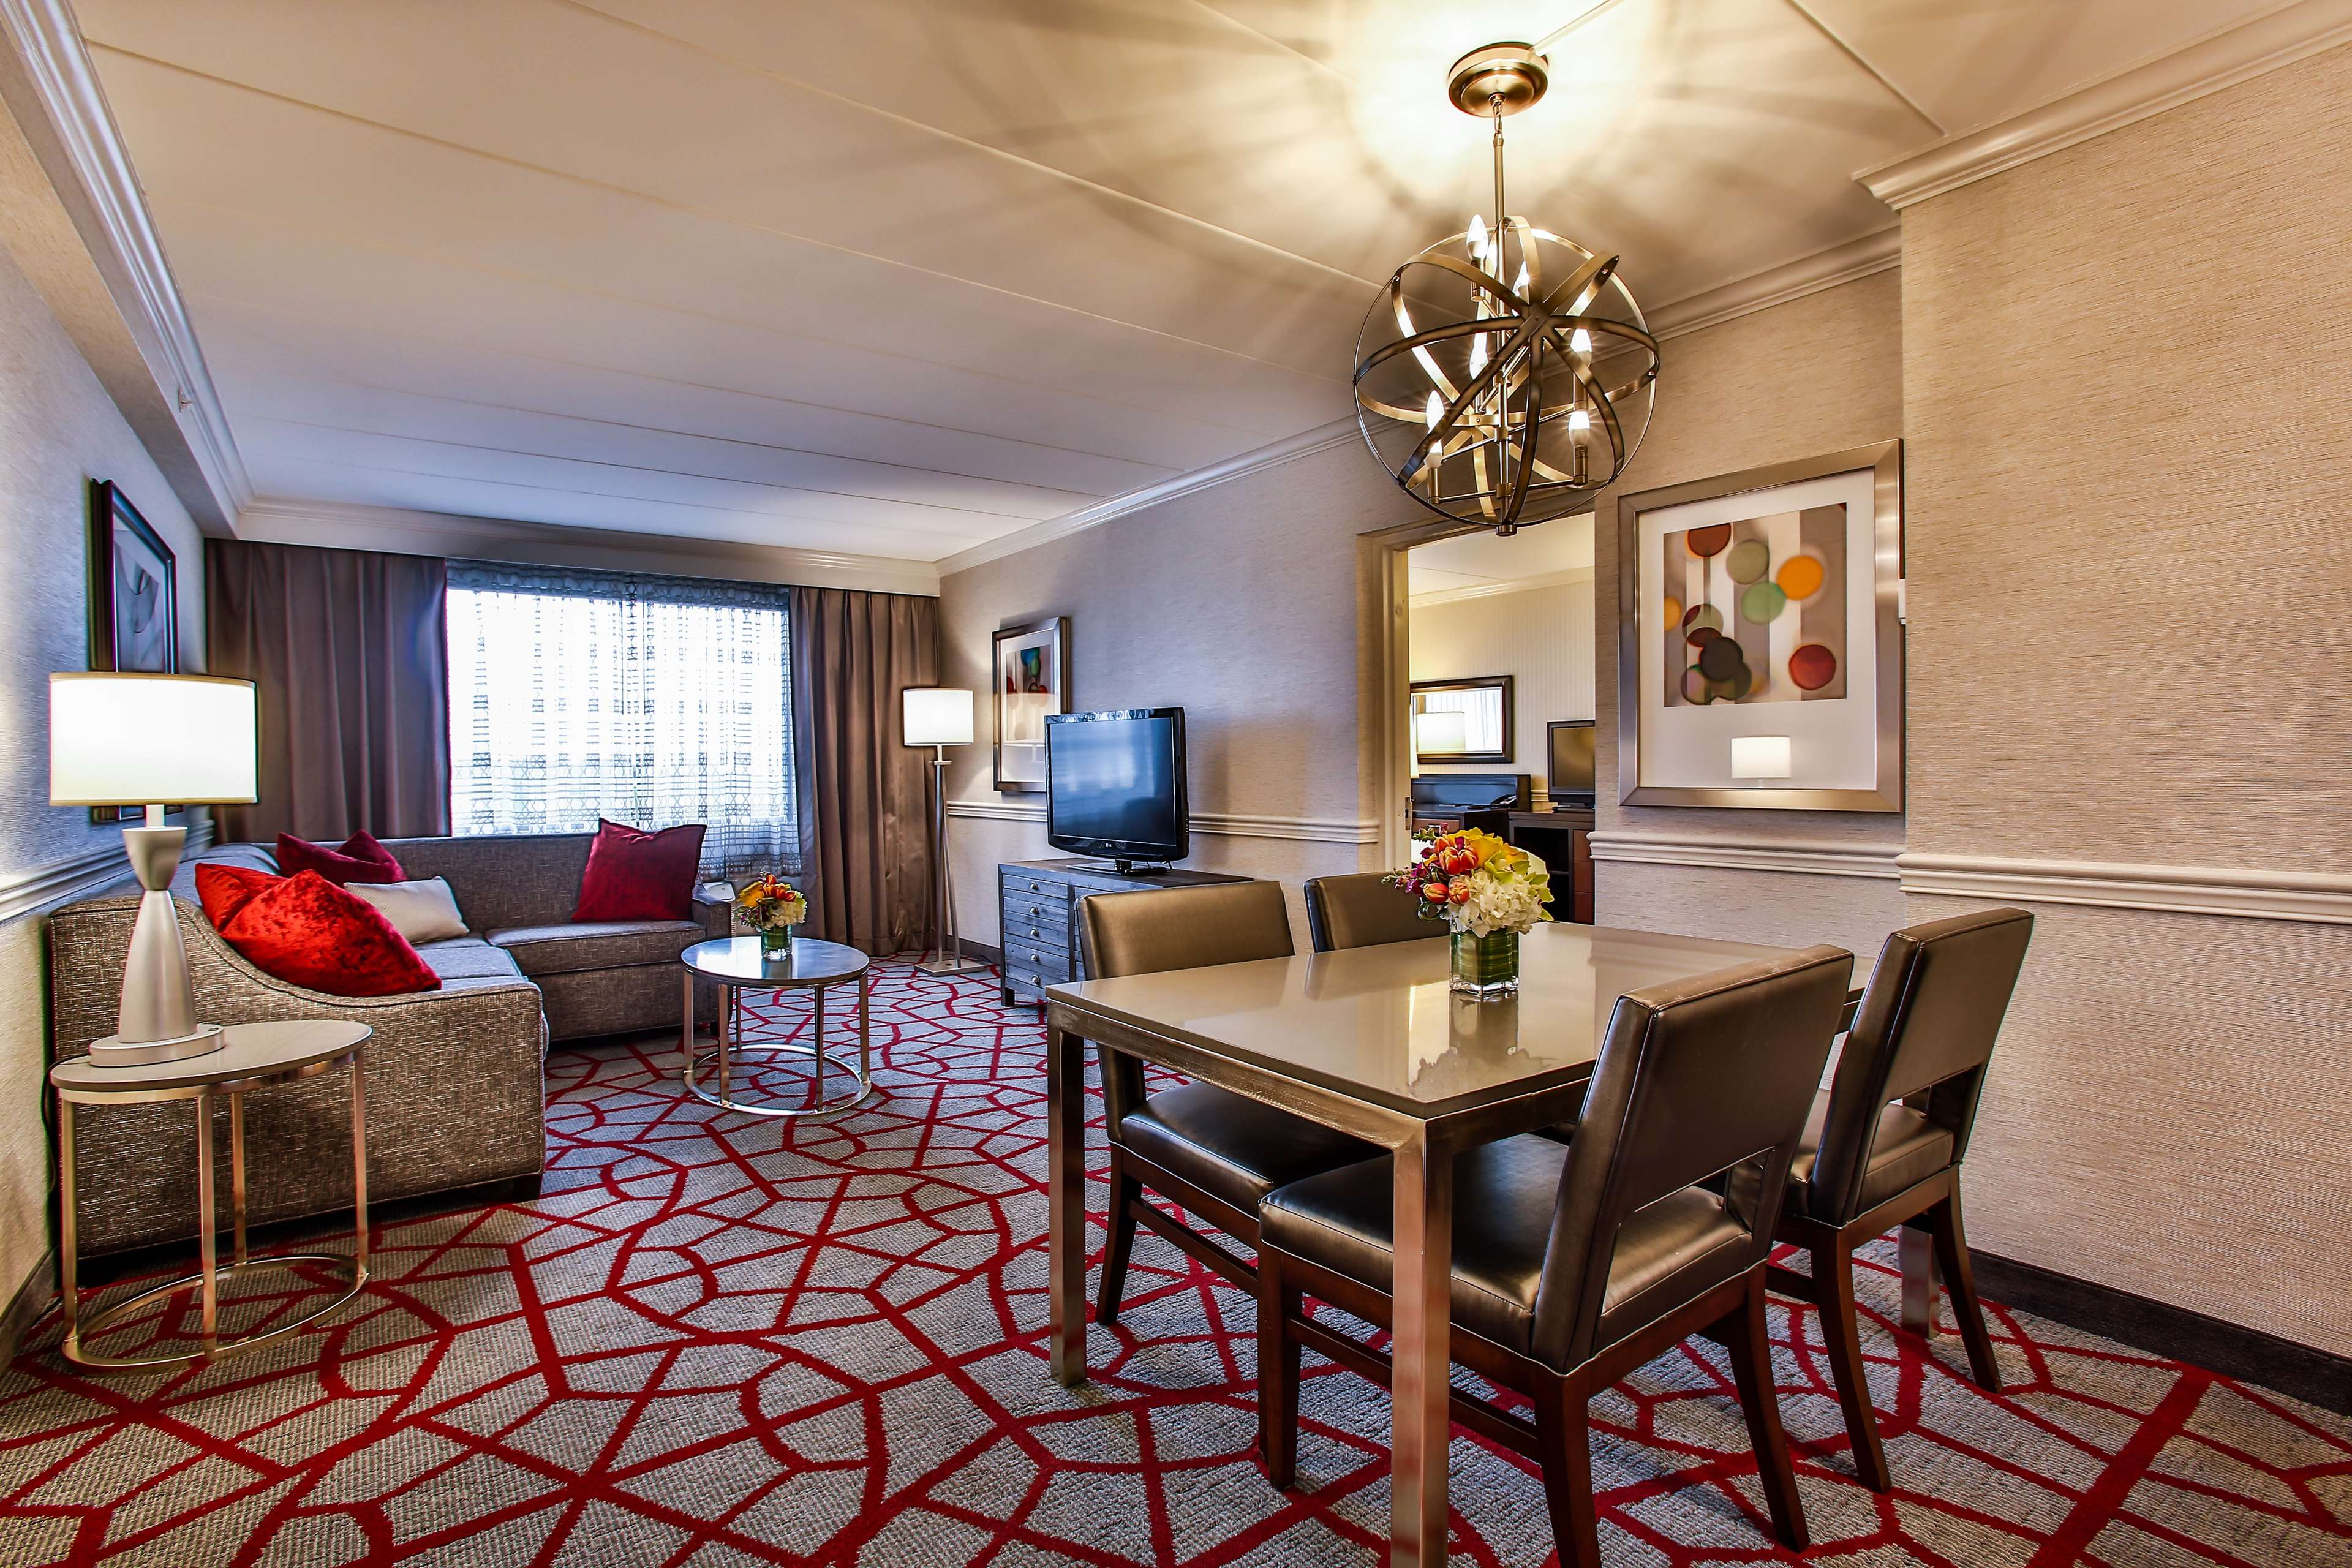 DoubleTree by Hilton Hotel Chicago - Alsip image 27